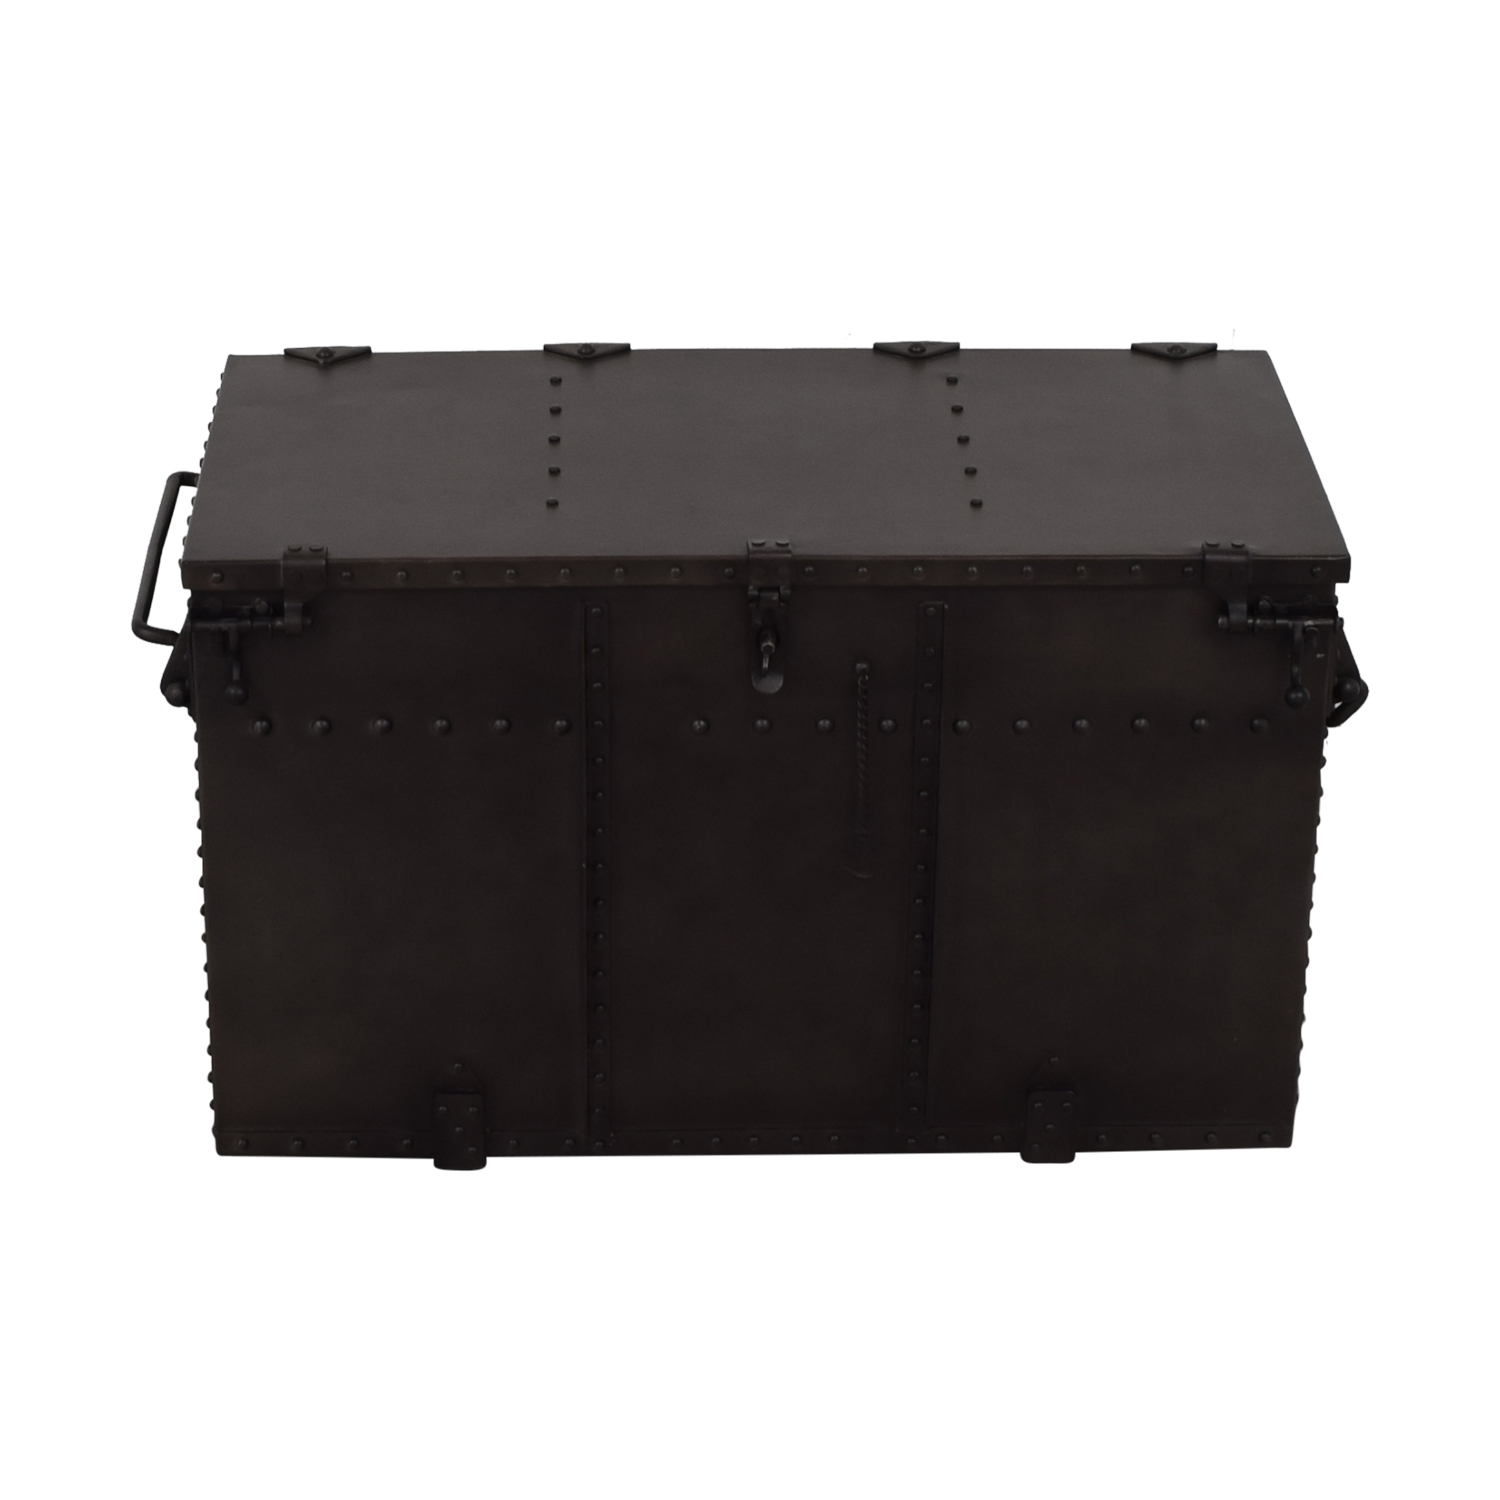 Restoration Hardware Restoration Hardware Metal Trunk used